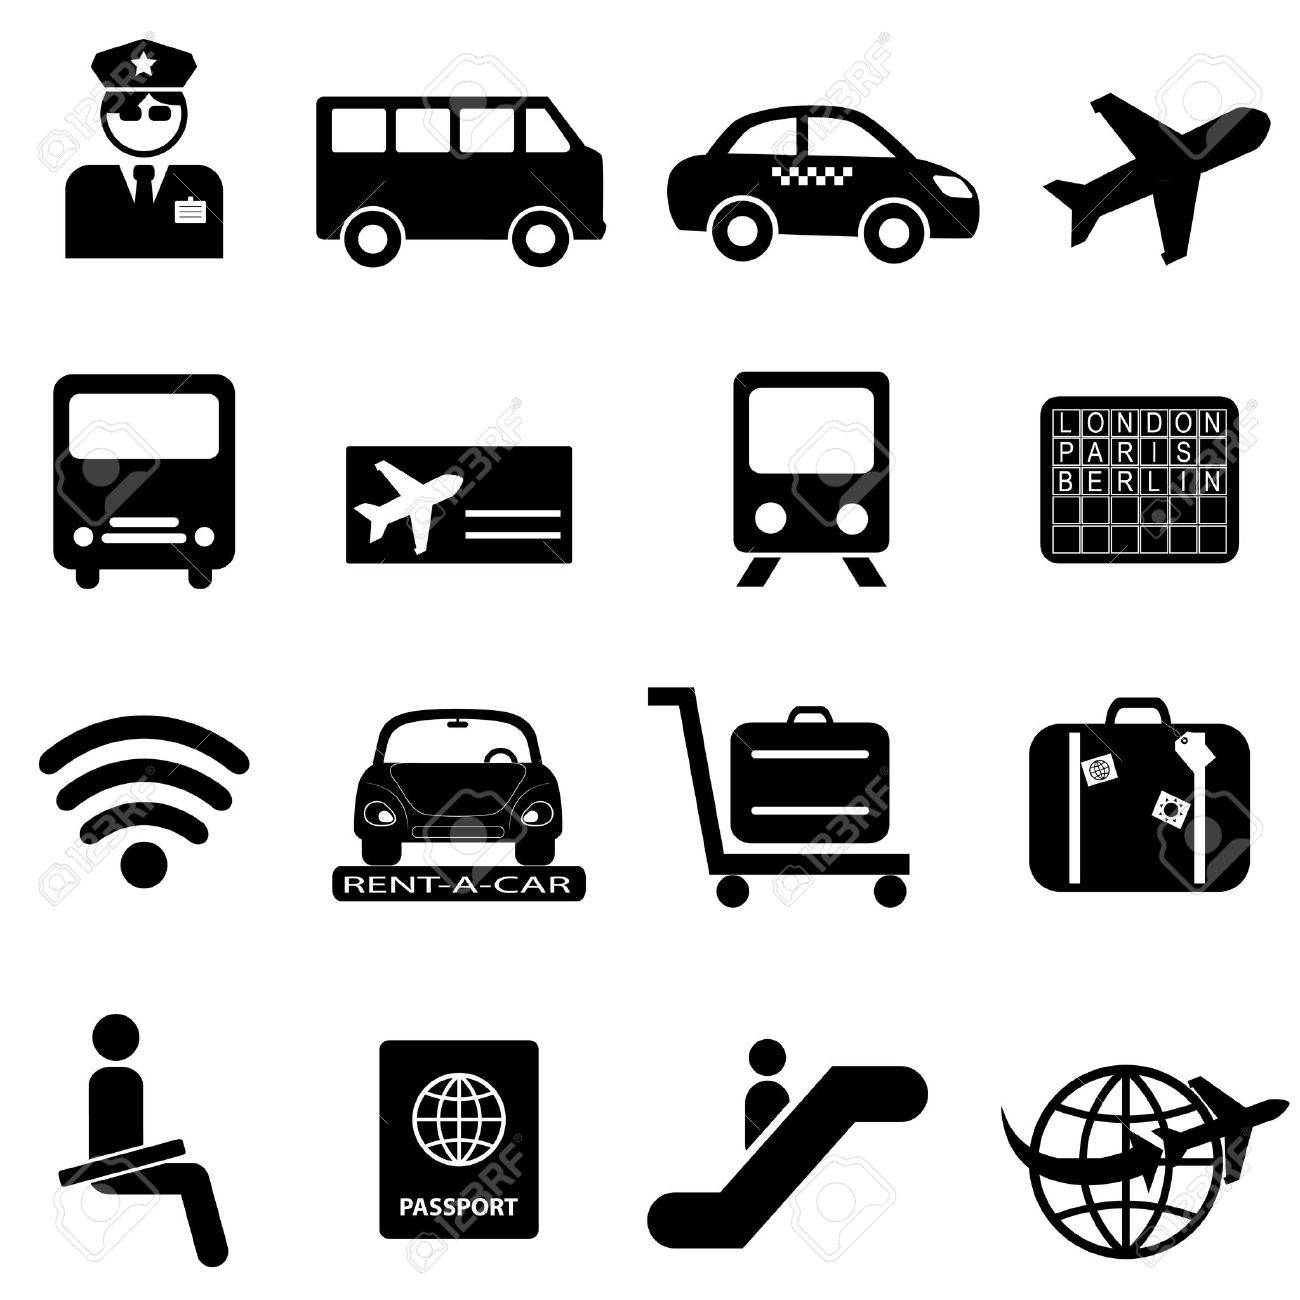 Airport and air travel icon set - 16801209